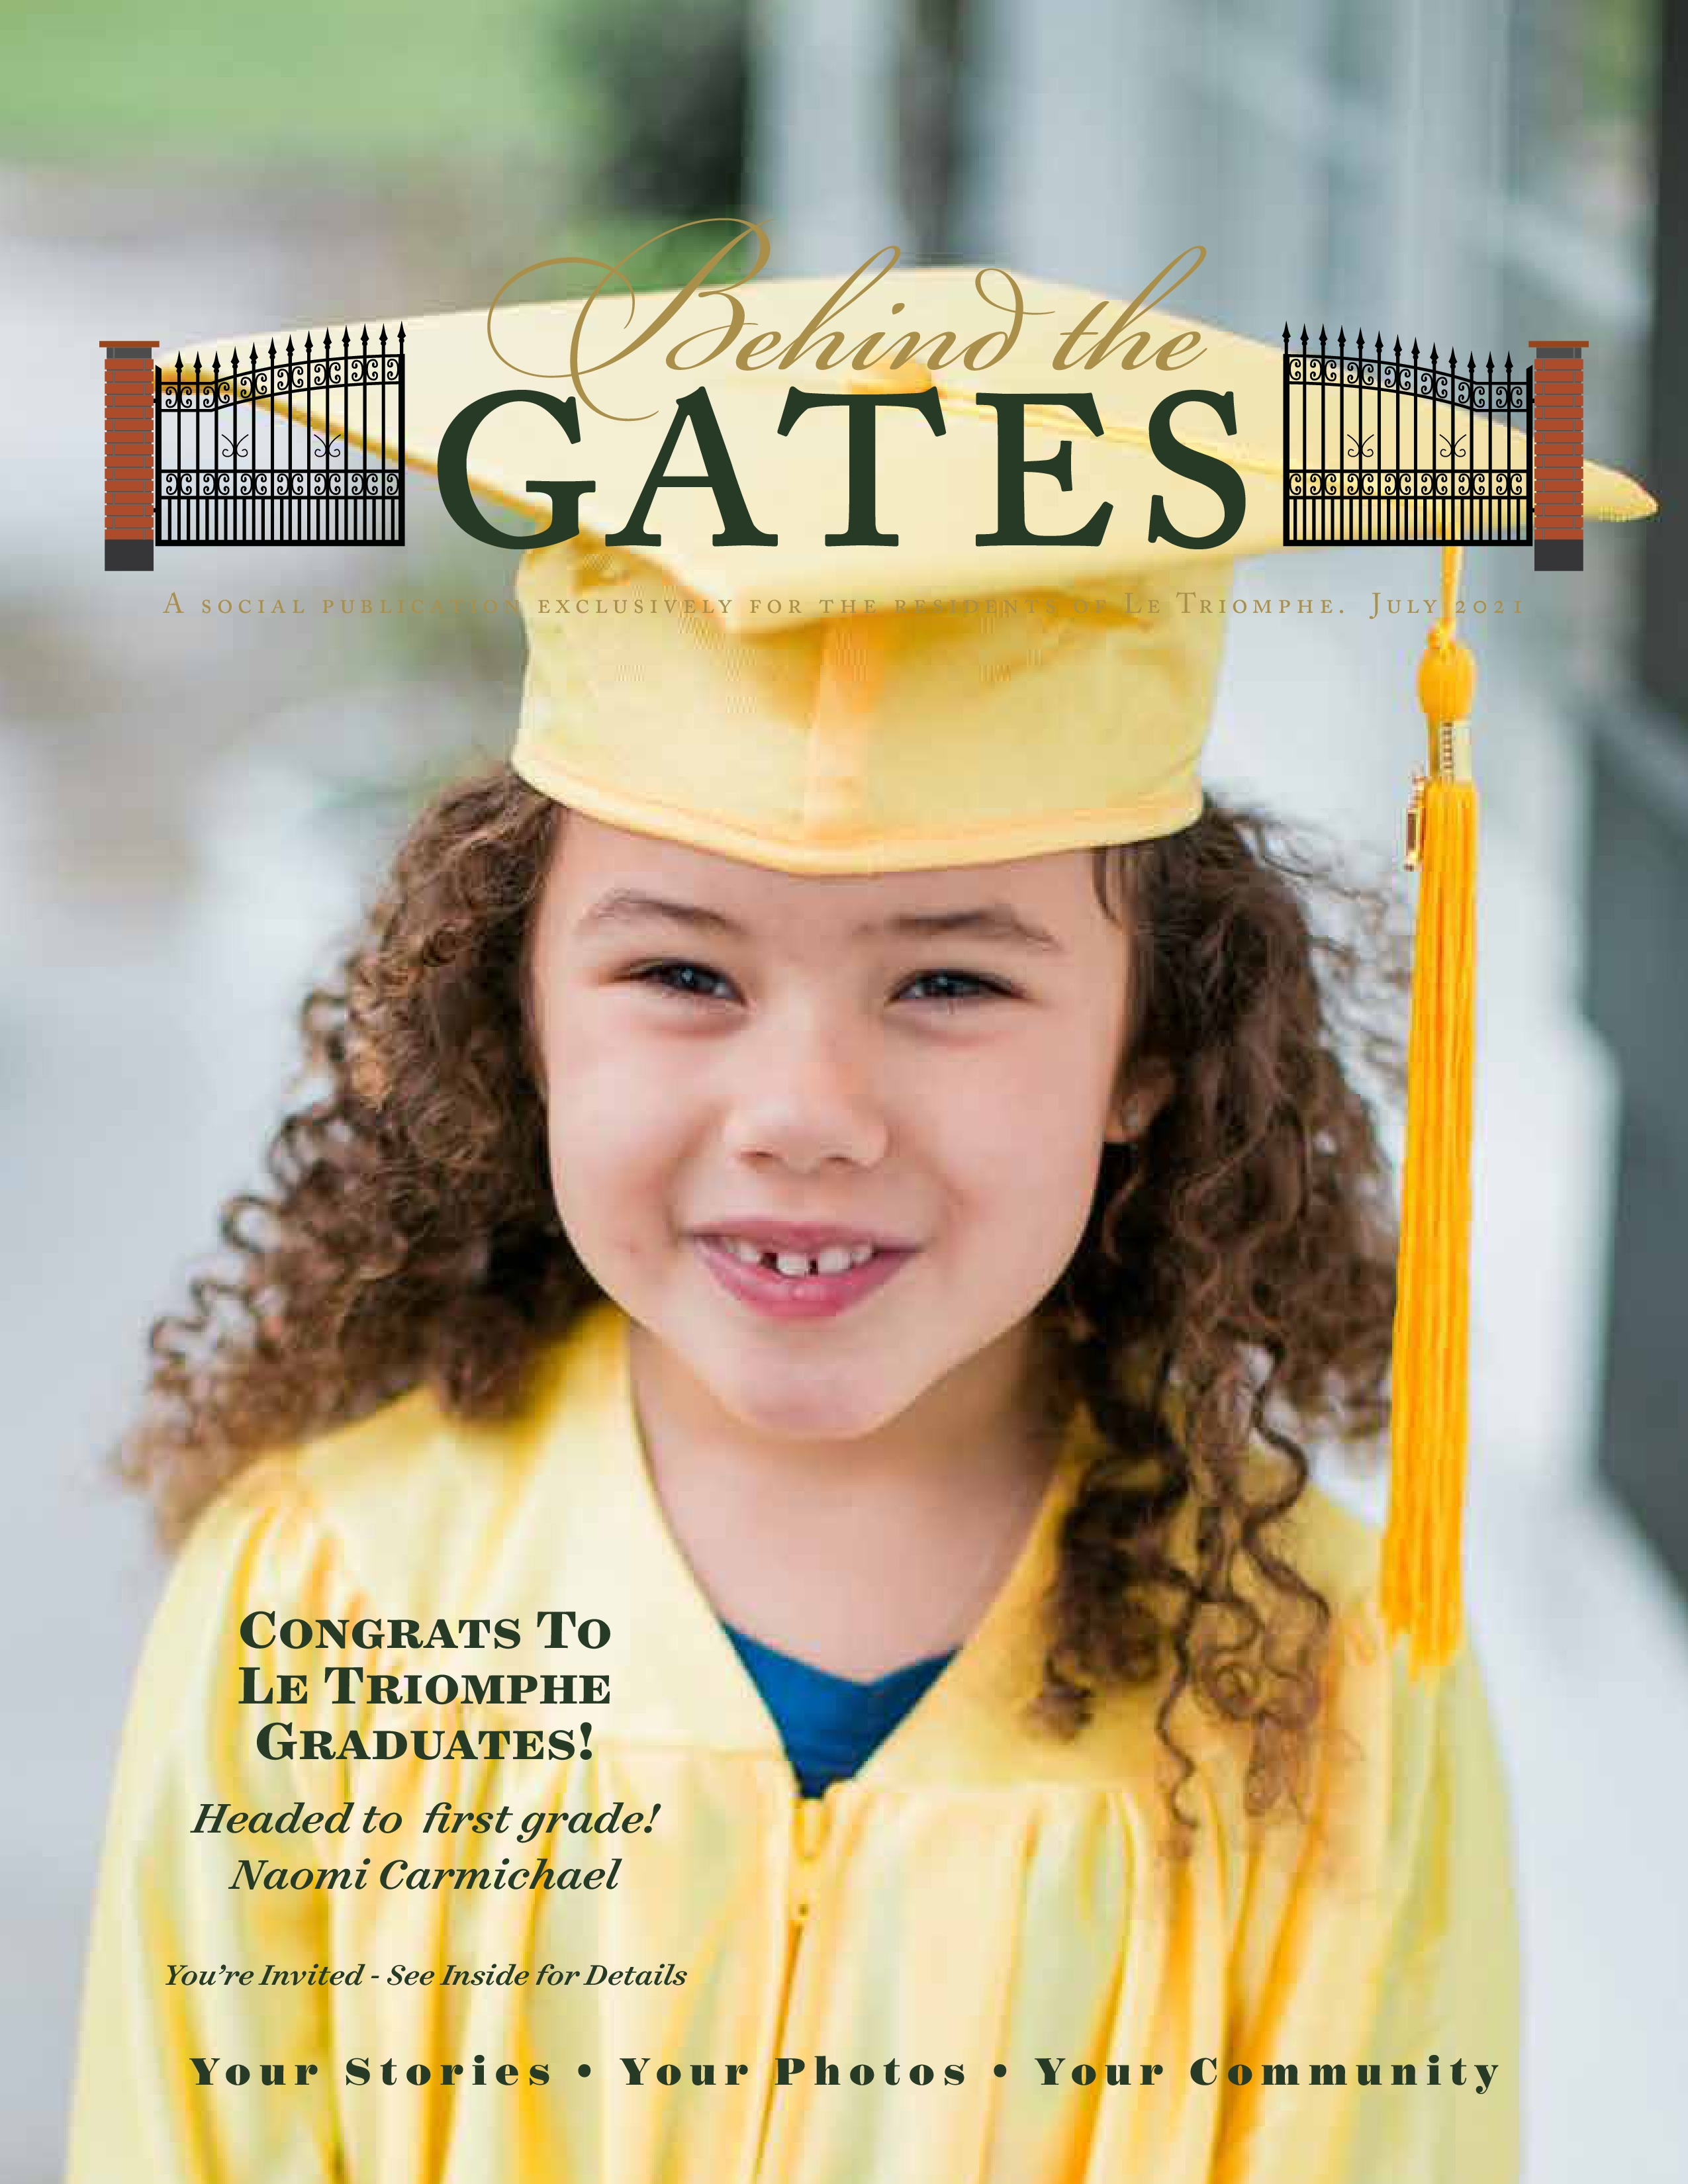 Behind the Gates 2021-07-01